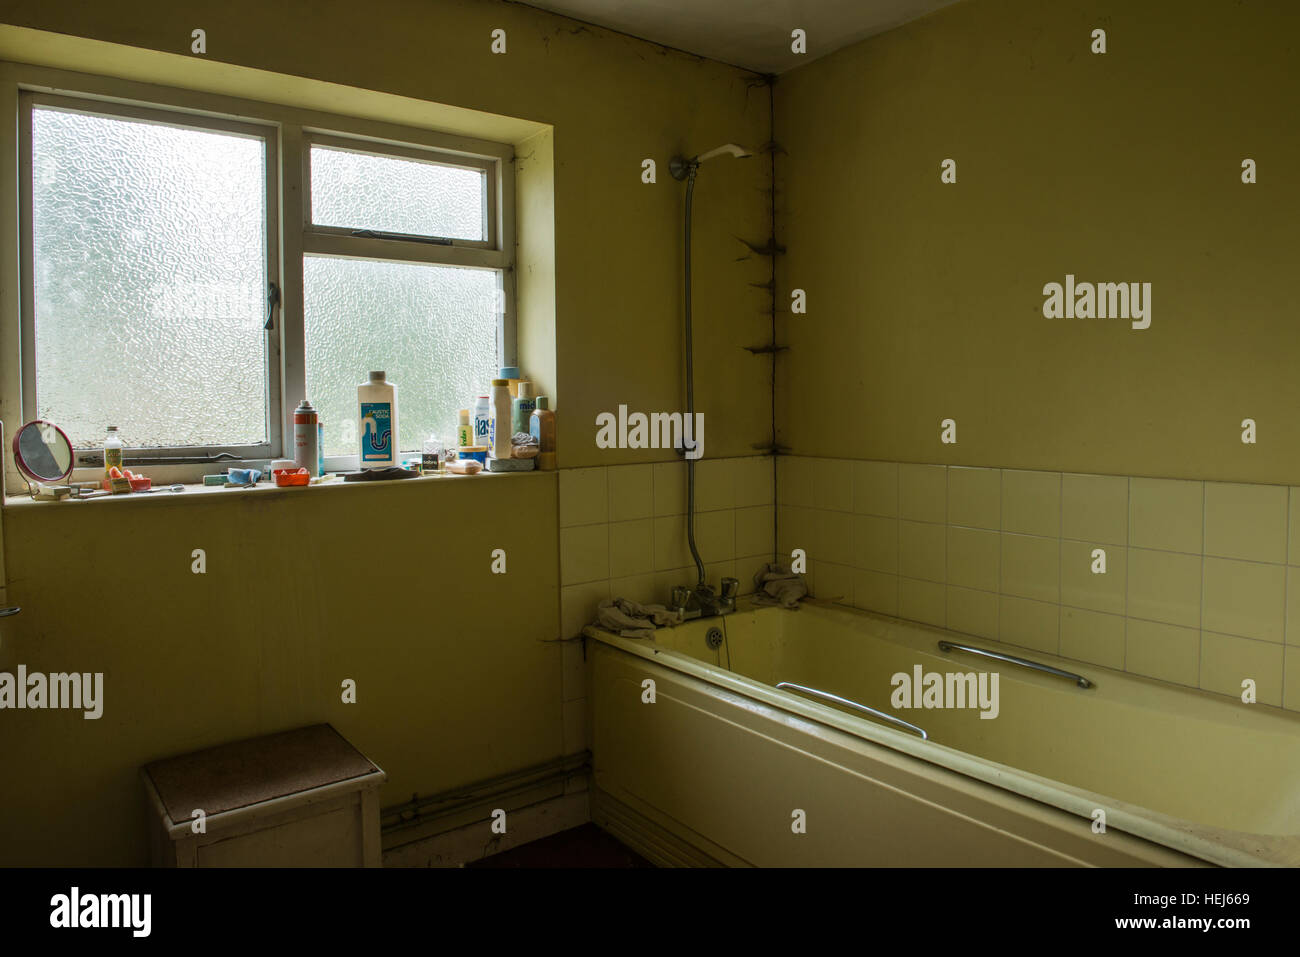 The bathroom inside an abandoned and derelict house with a small ...